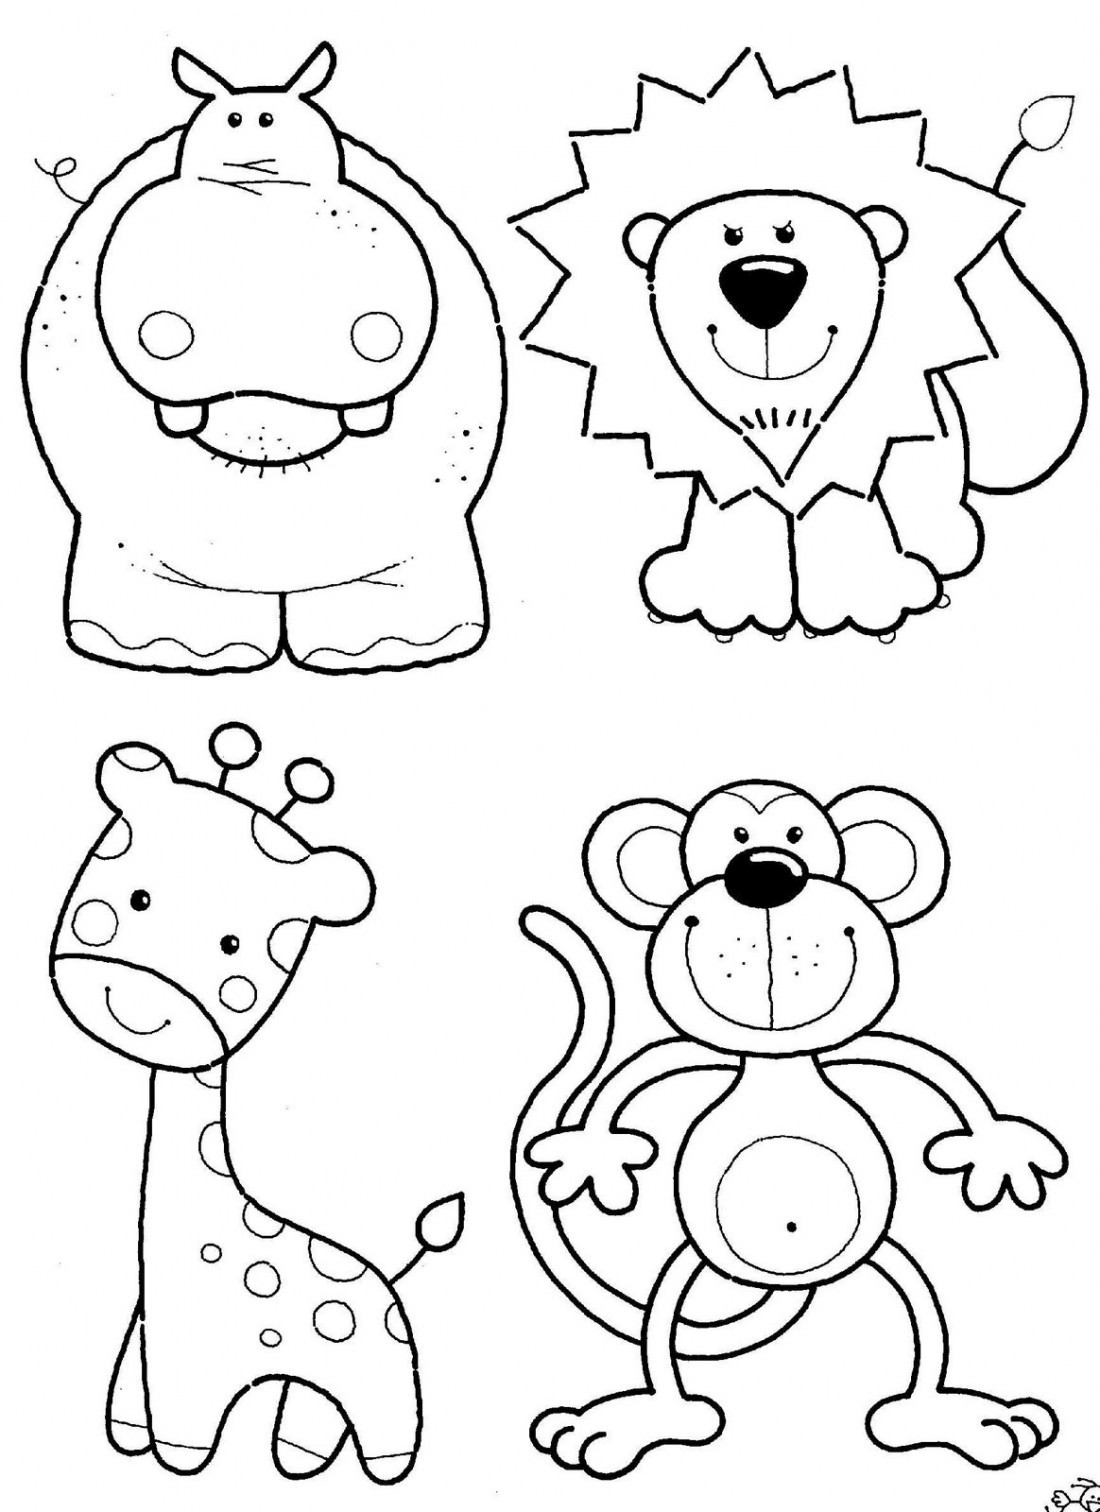 Printable Coloring Pages Of Animals  Fish Sea Animals Coloring Pages For Kids Printable 1095